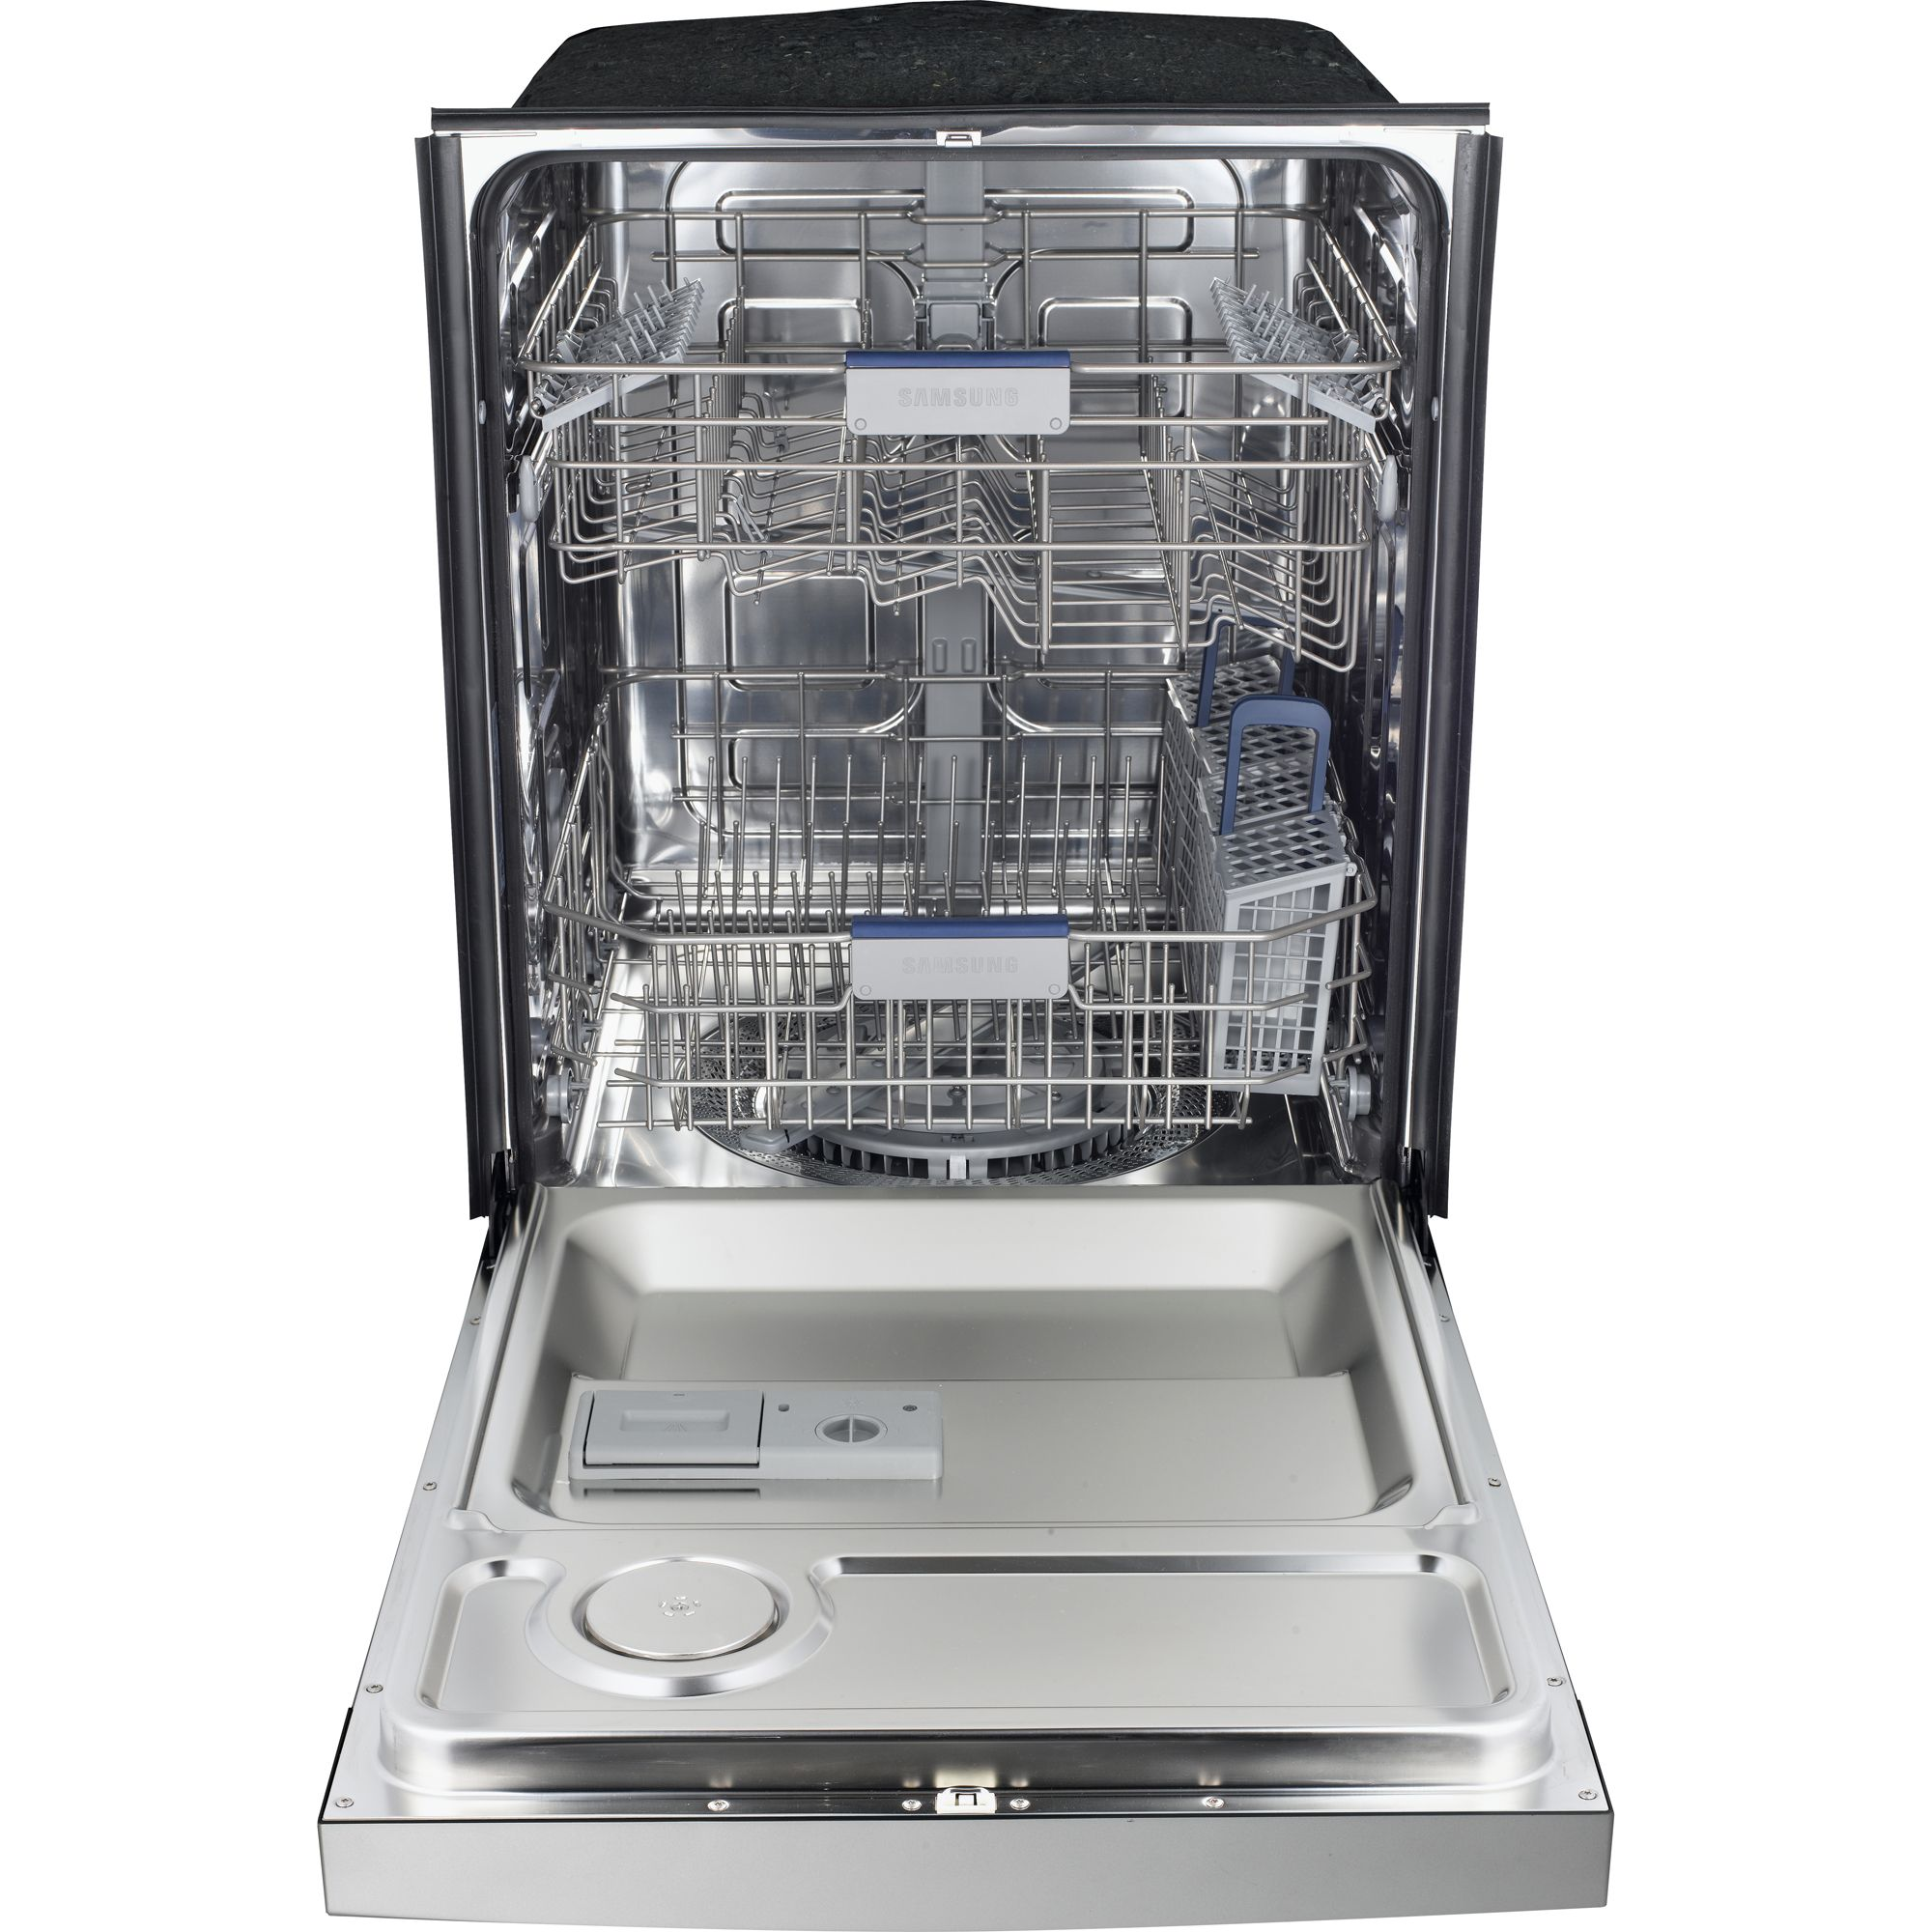 Samsung 24 in. Built-In Dishwasher (Model DMT300RFS)